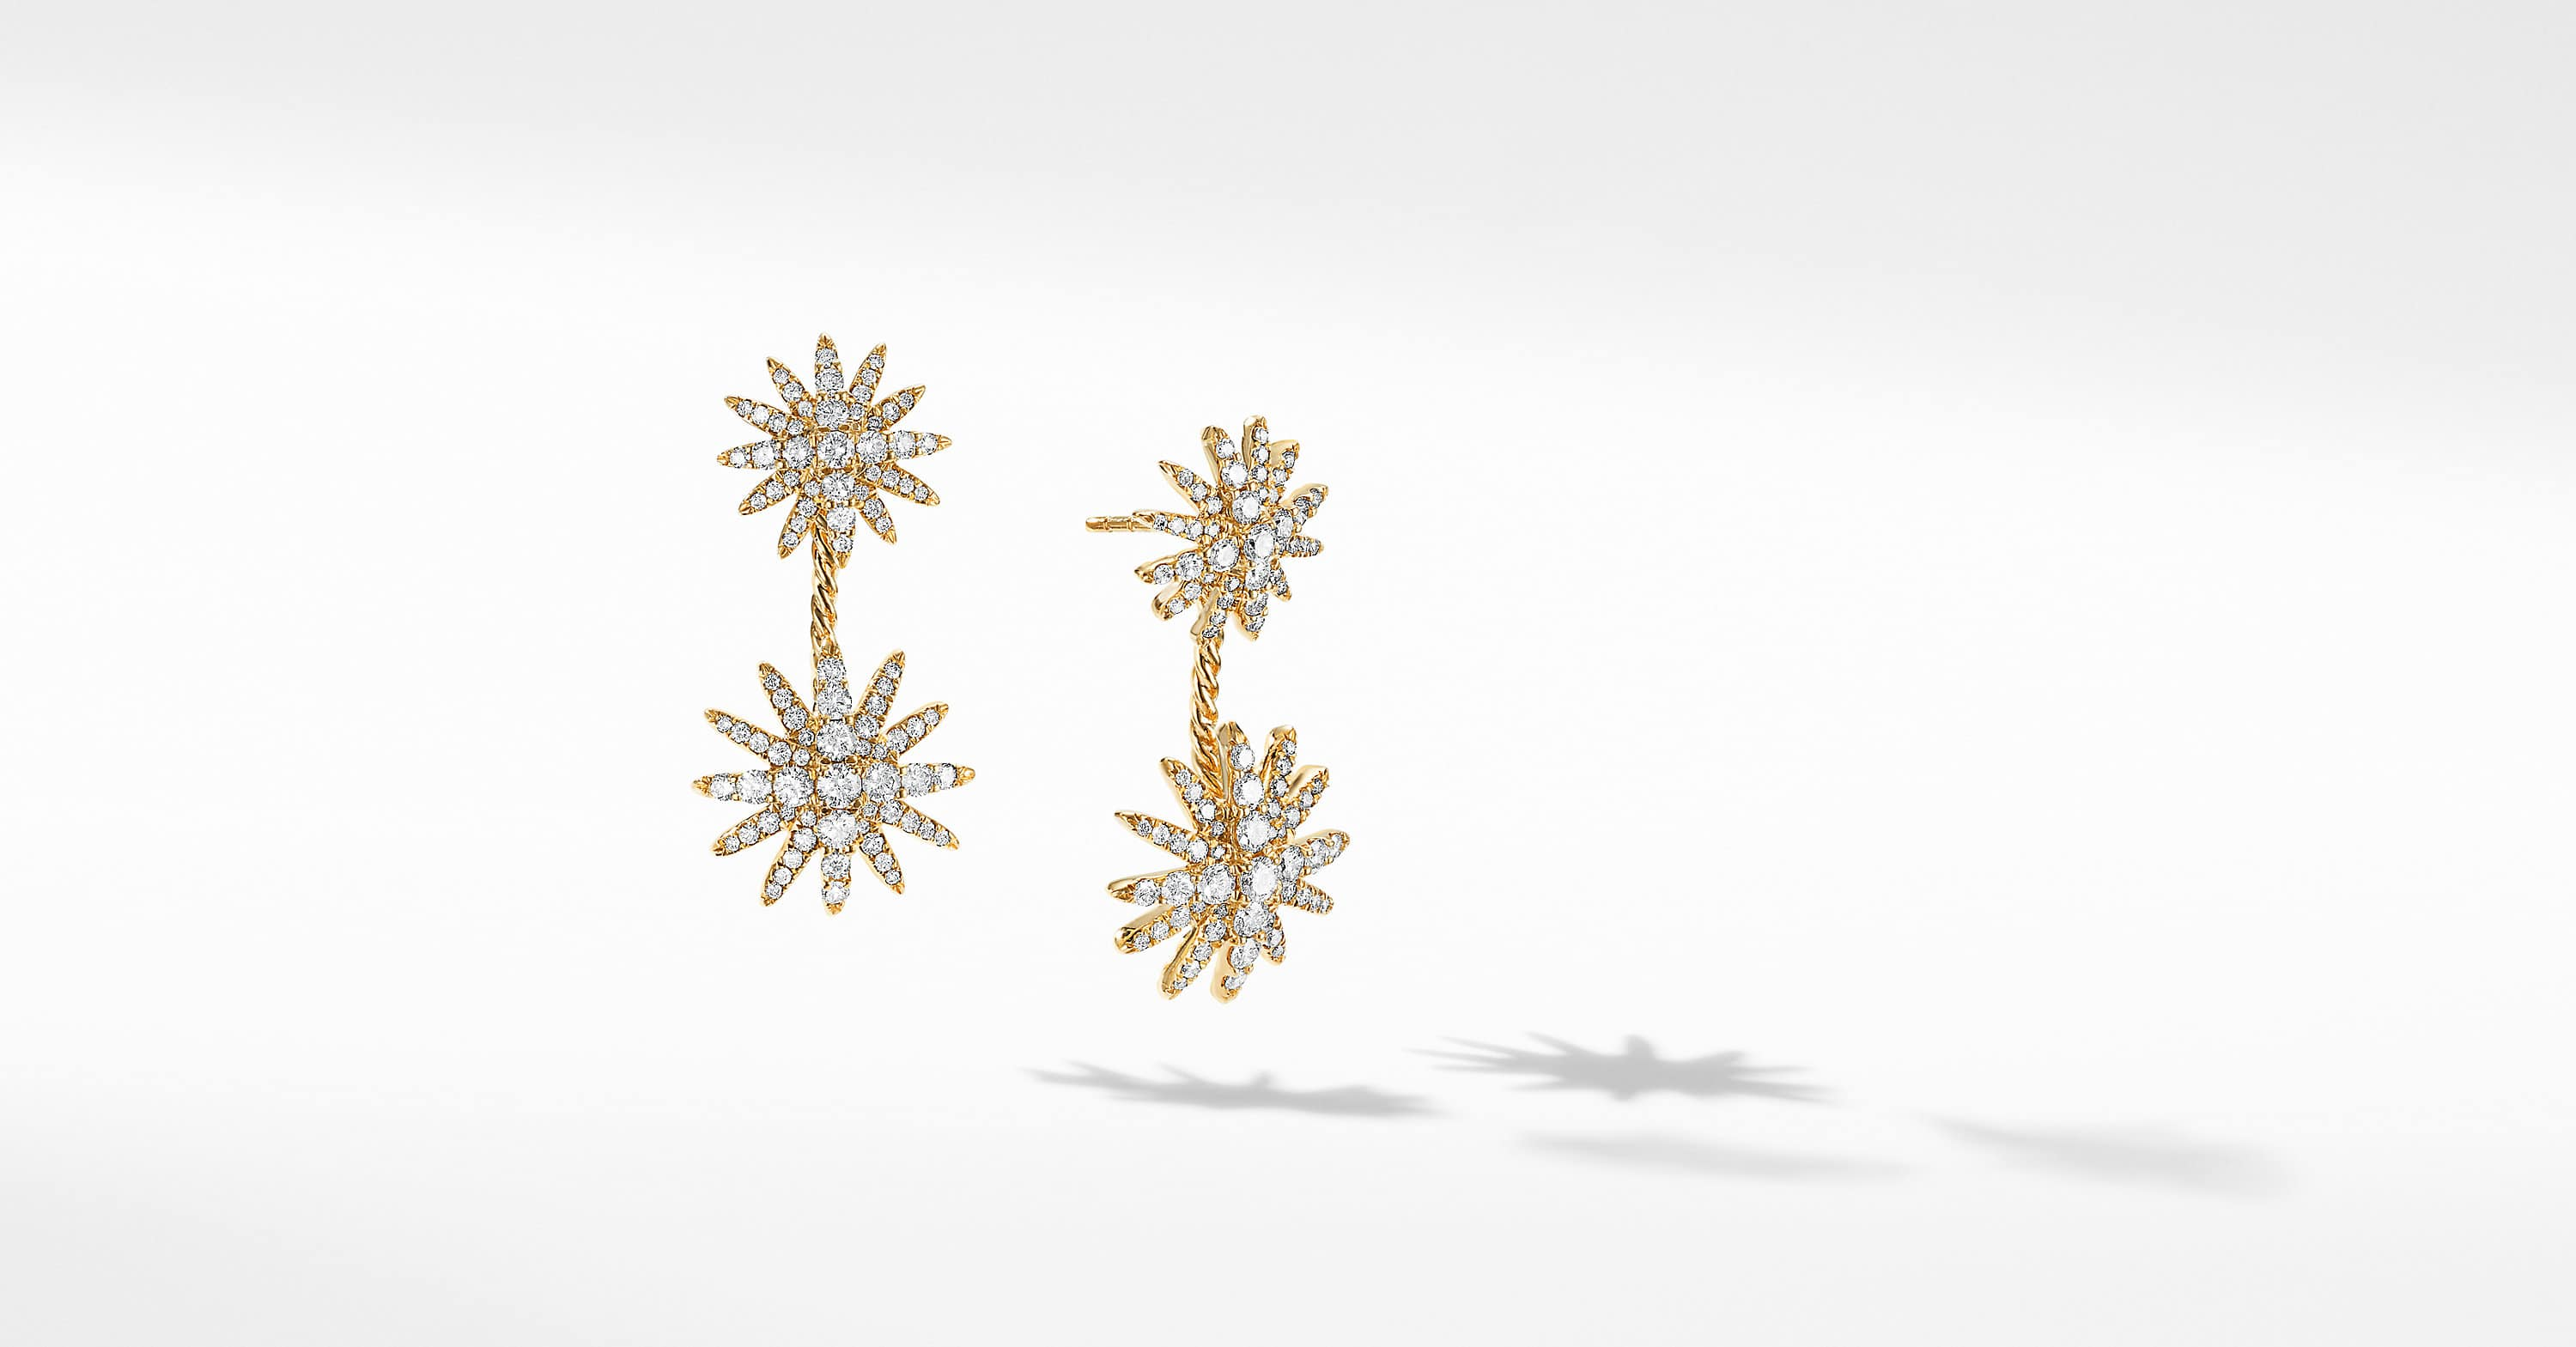 Starburst Double Drop Earrings in 18K Yellow Gold with Full Pavé